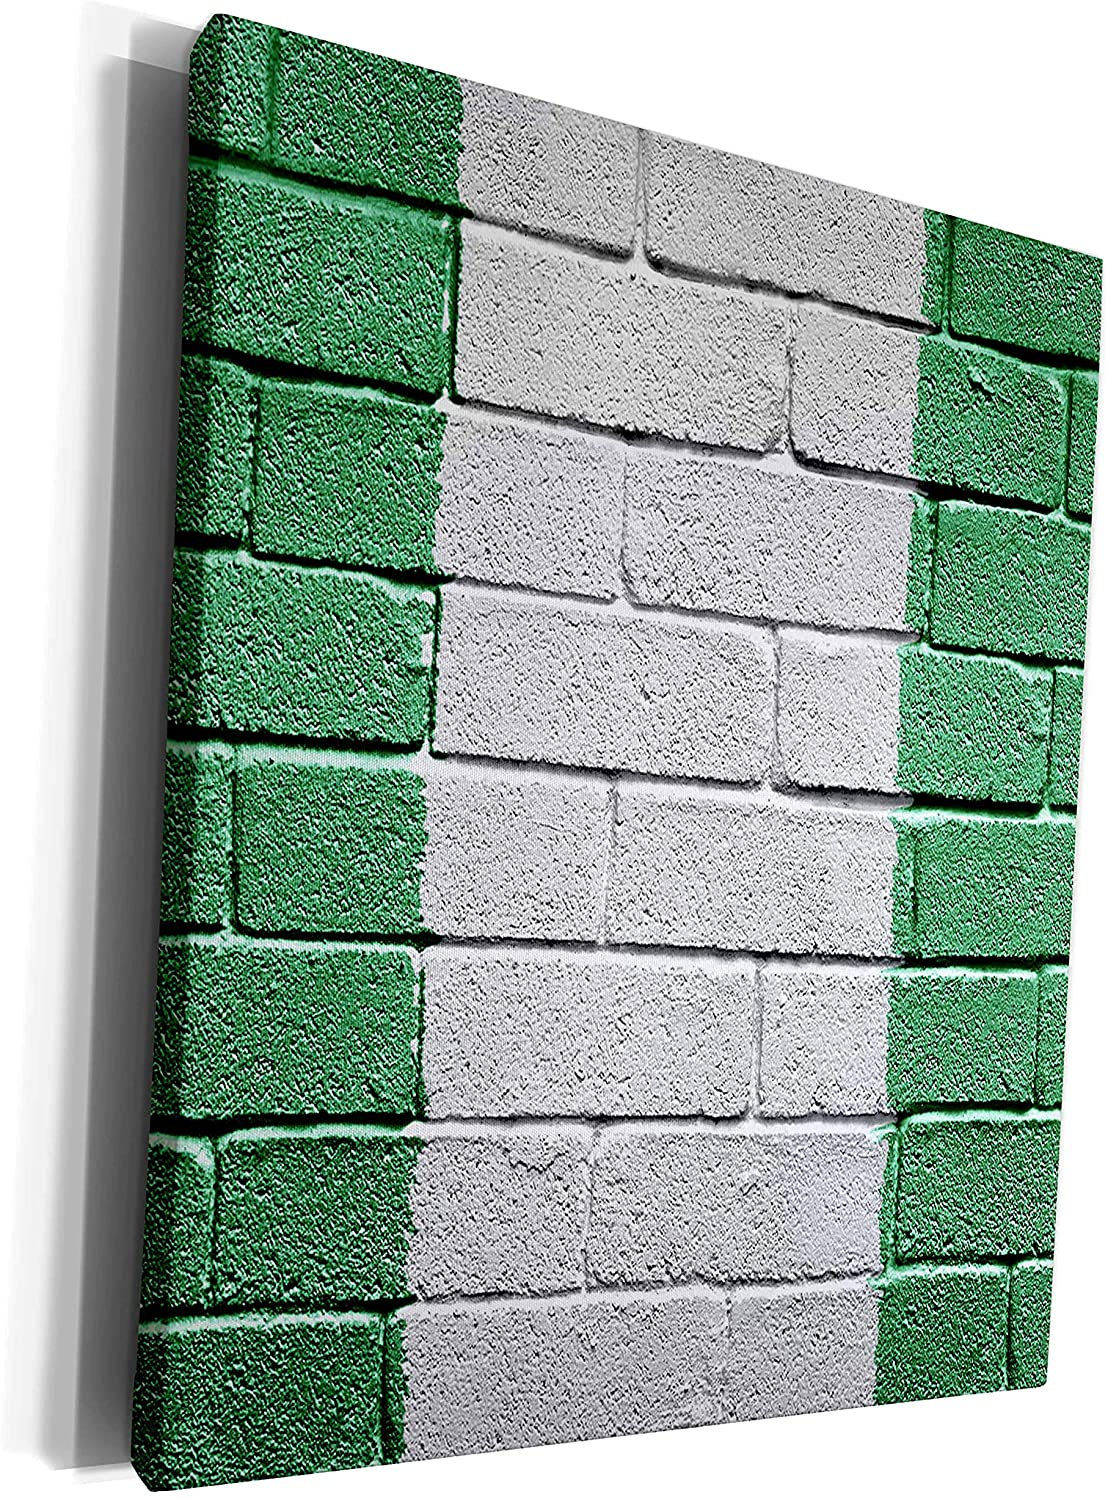 3dRose Carsten Reisinger Illustrations - National flag of Nigeria painted onto a brick wall Nigerian - Museum Grade Canvas Wrap (cw_156958_1)